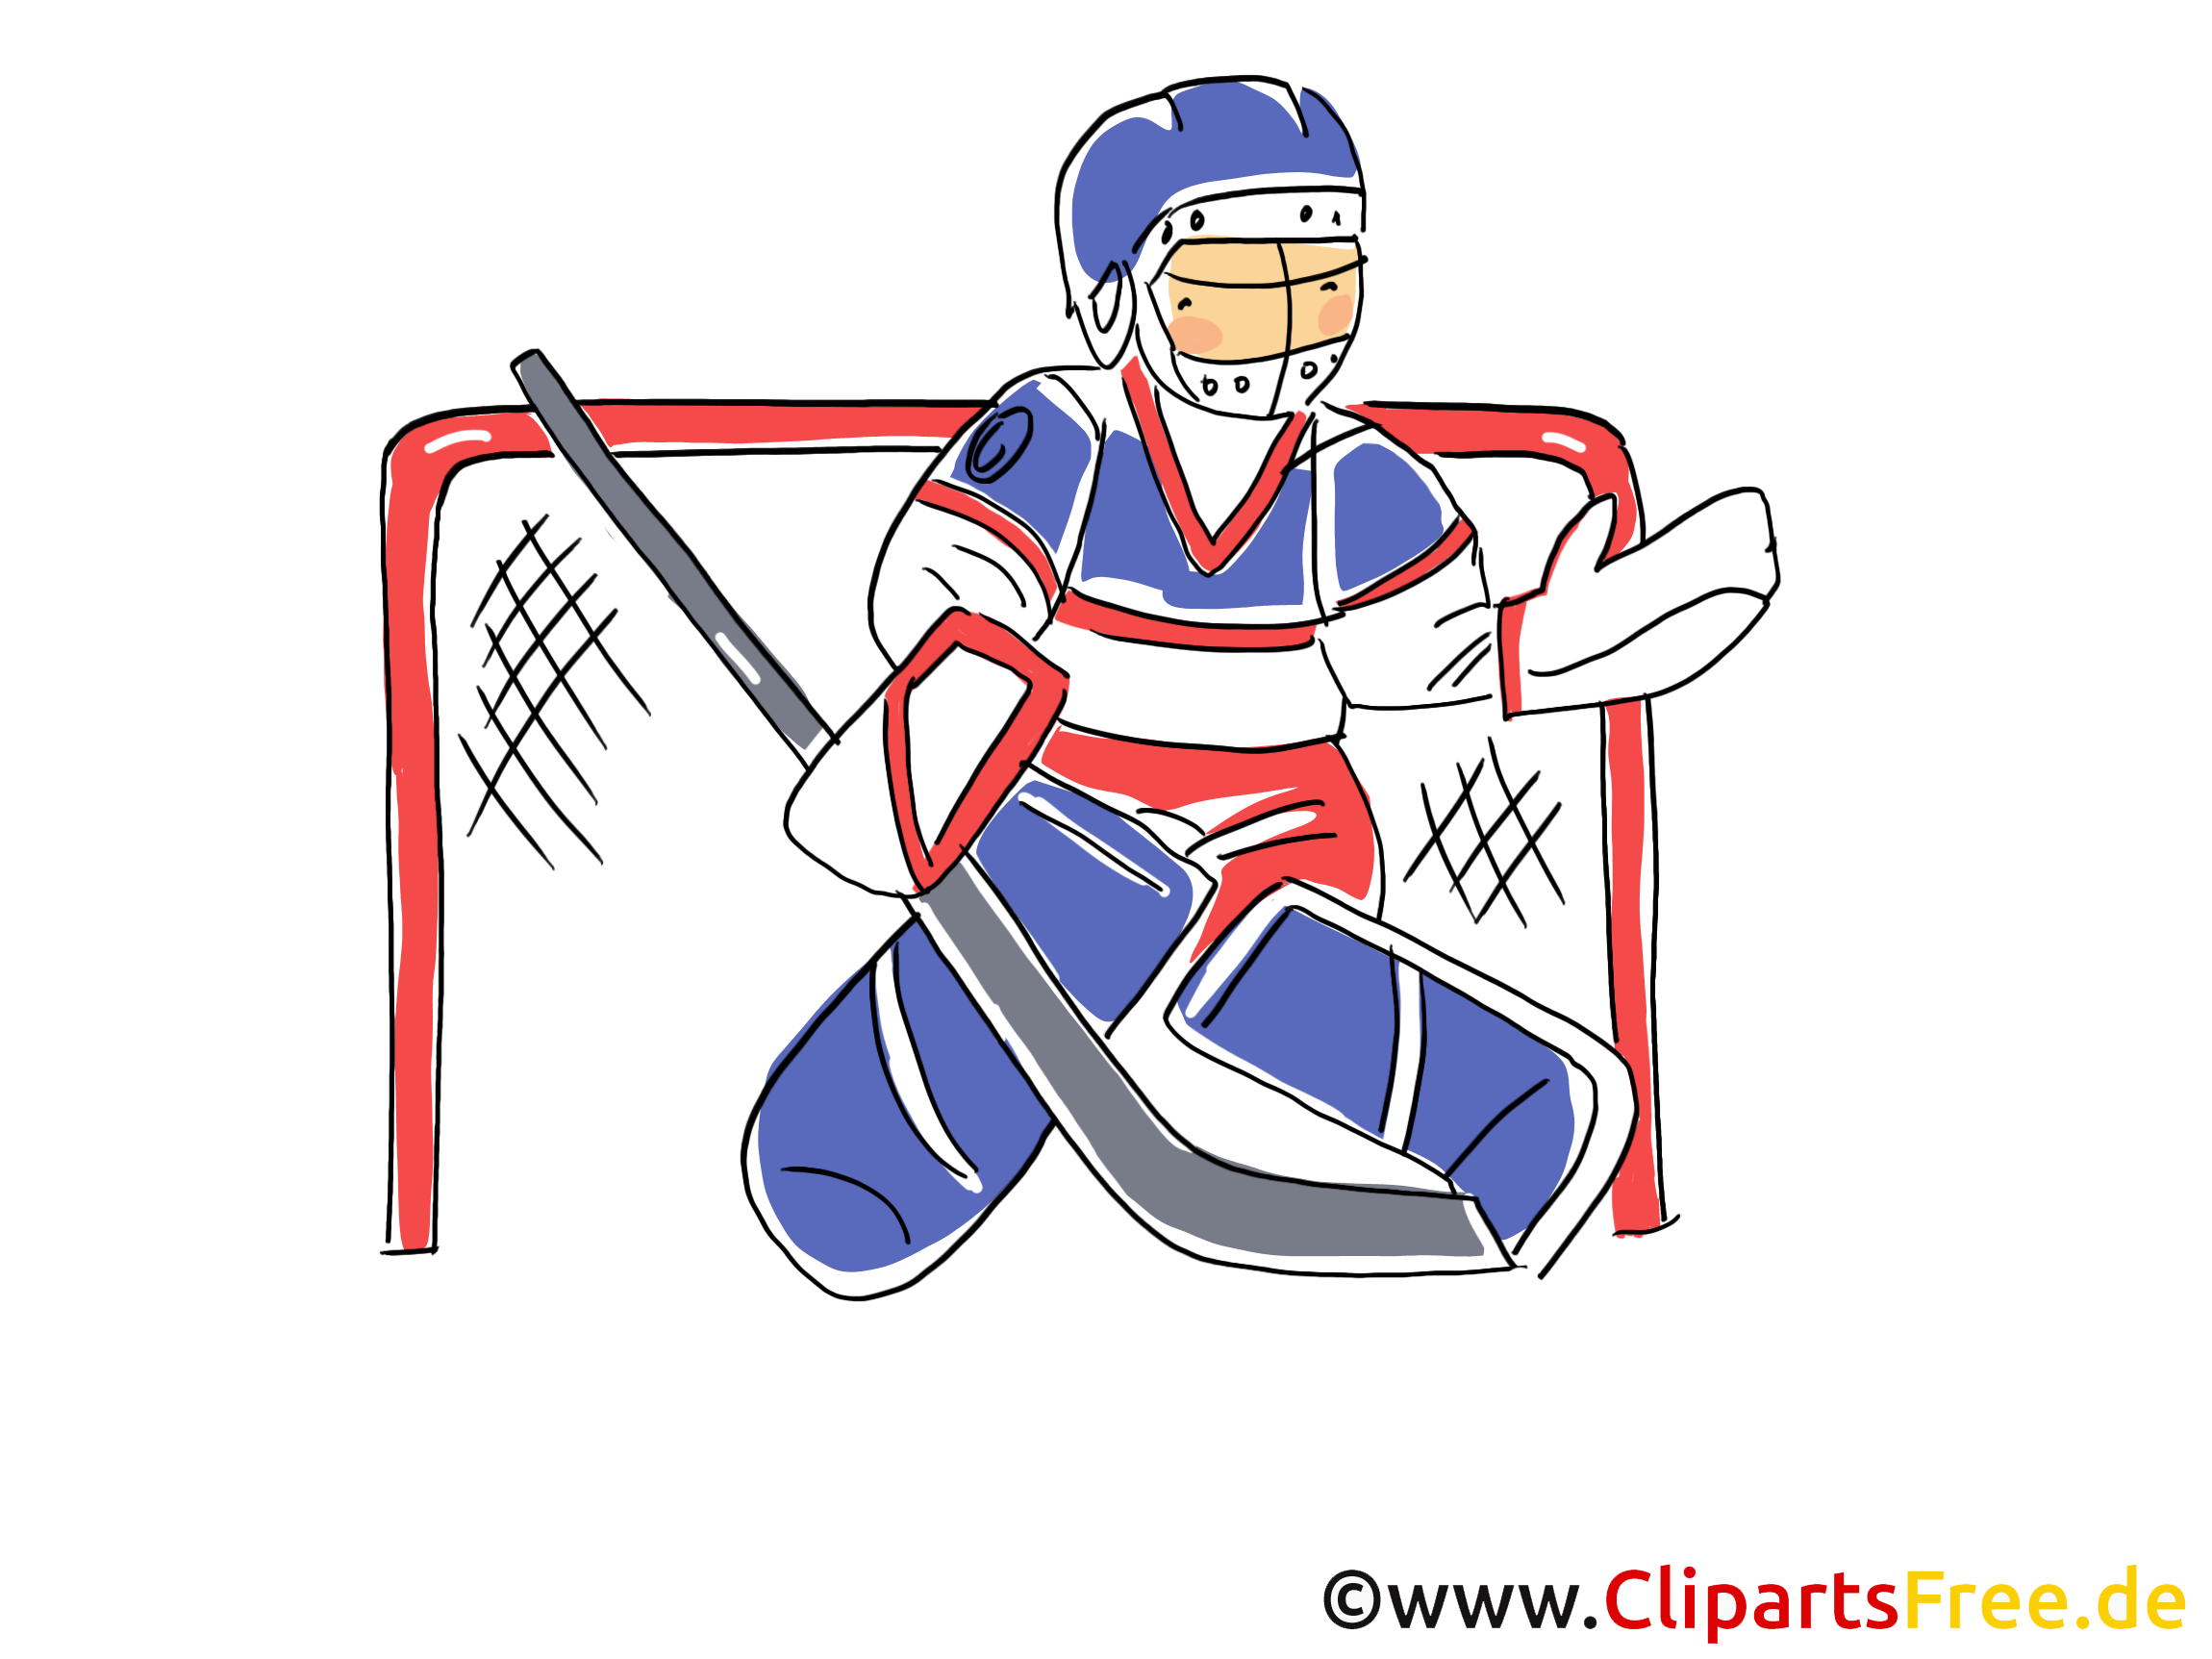 Torwart Eishockey Bild, Illustration, Clipart, Comic, Cartoon gratis